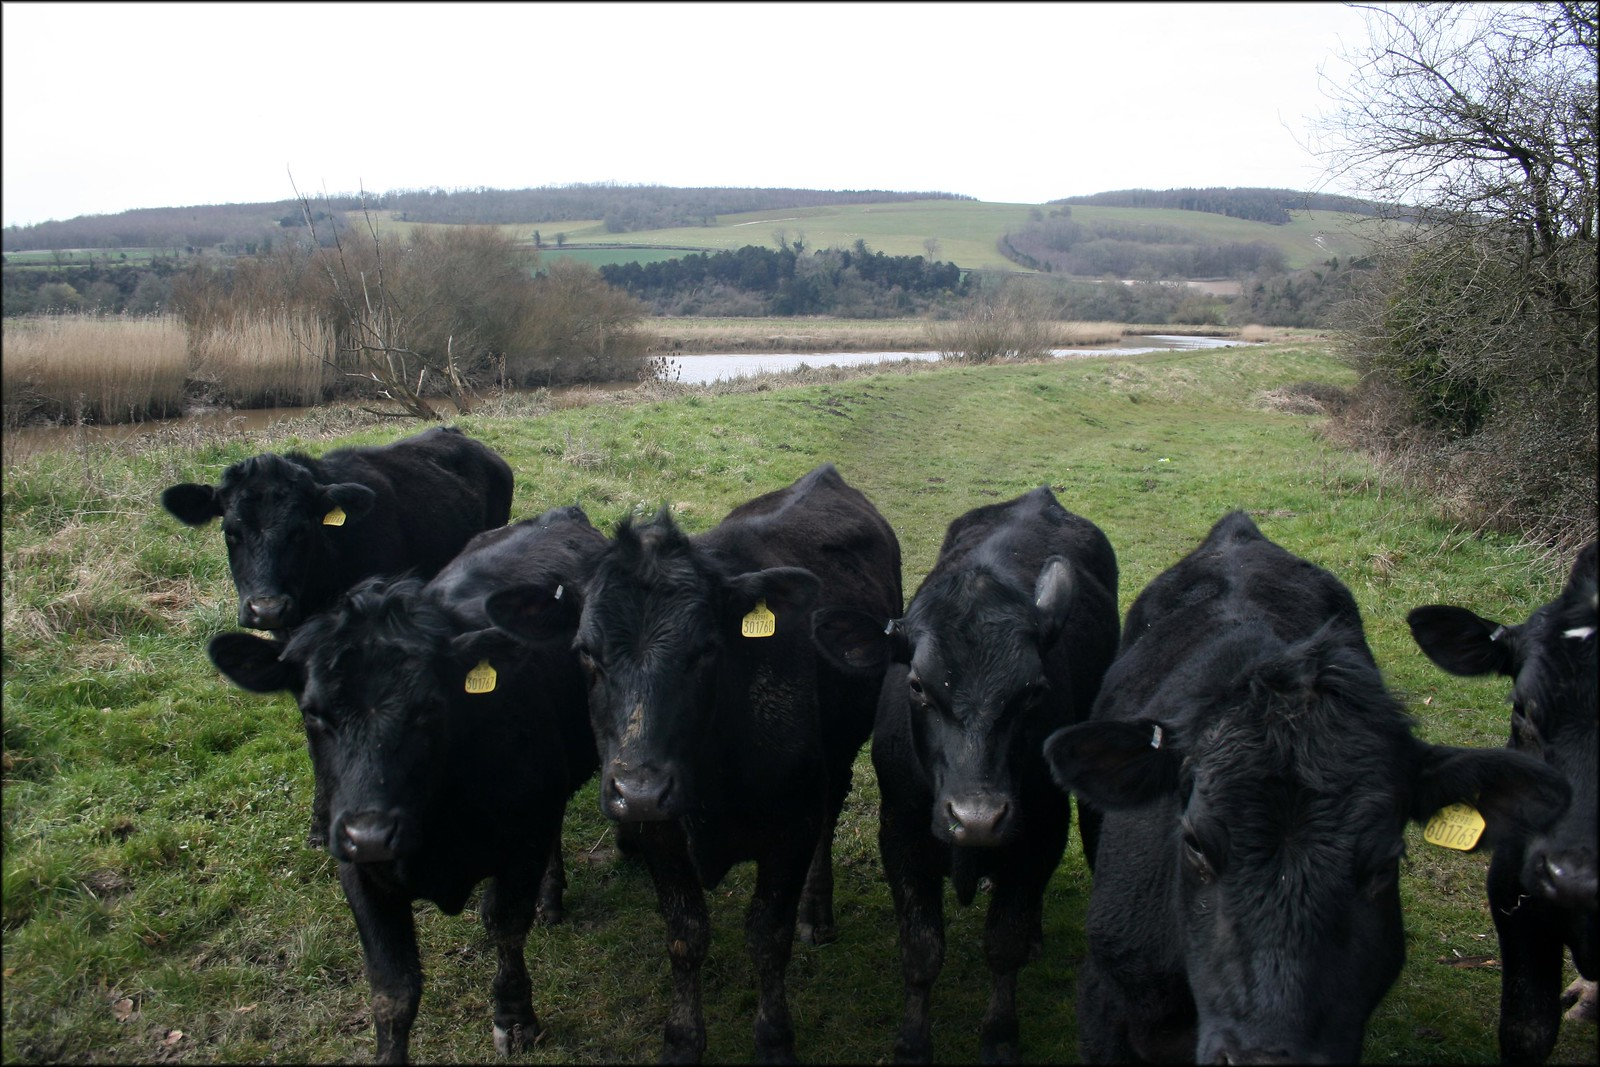 Cows near Burpham